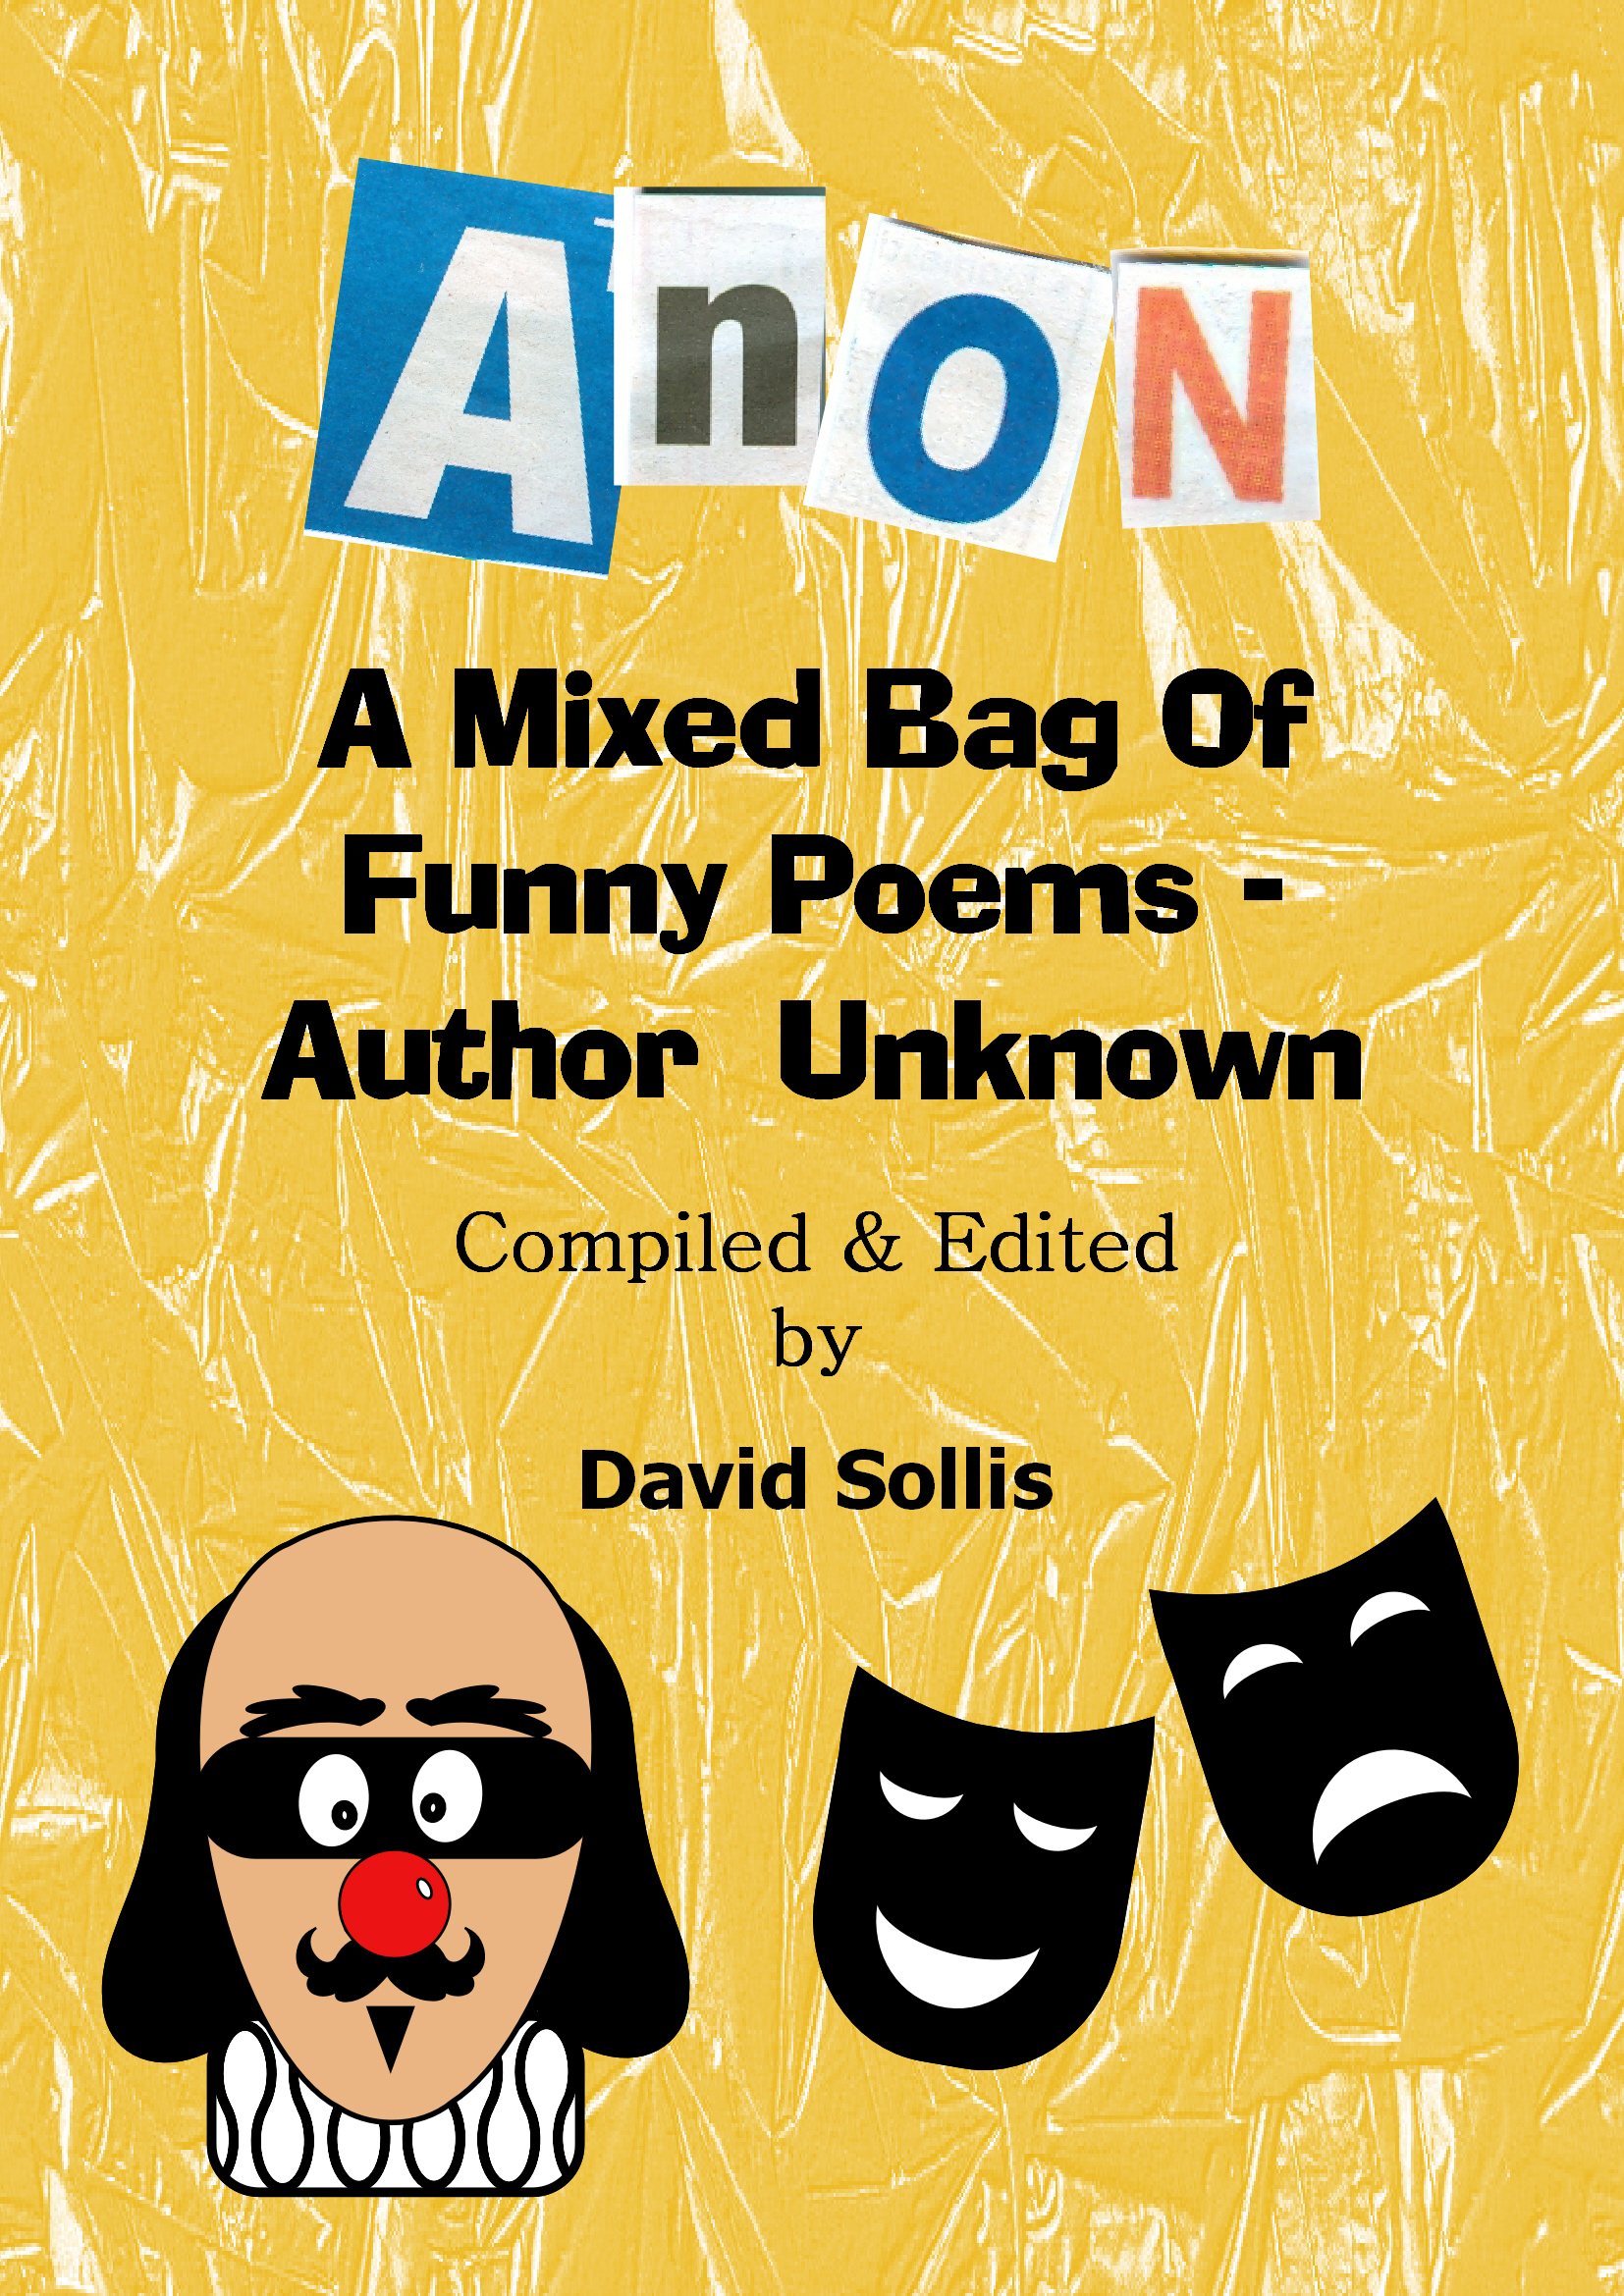 ANON: A Mixed Bag Of Funny Poems - Author Unknown